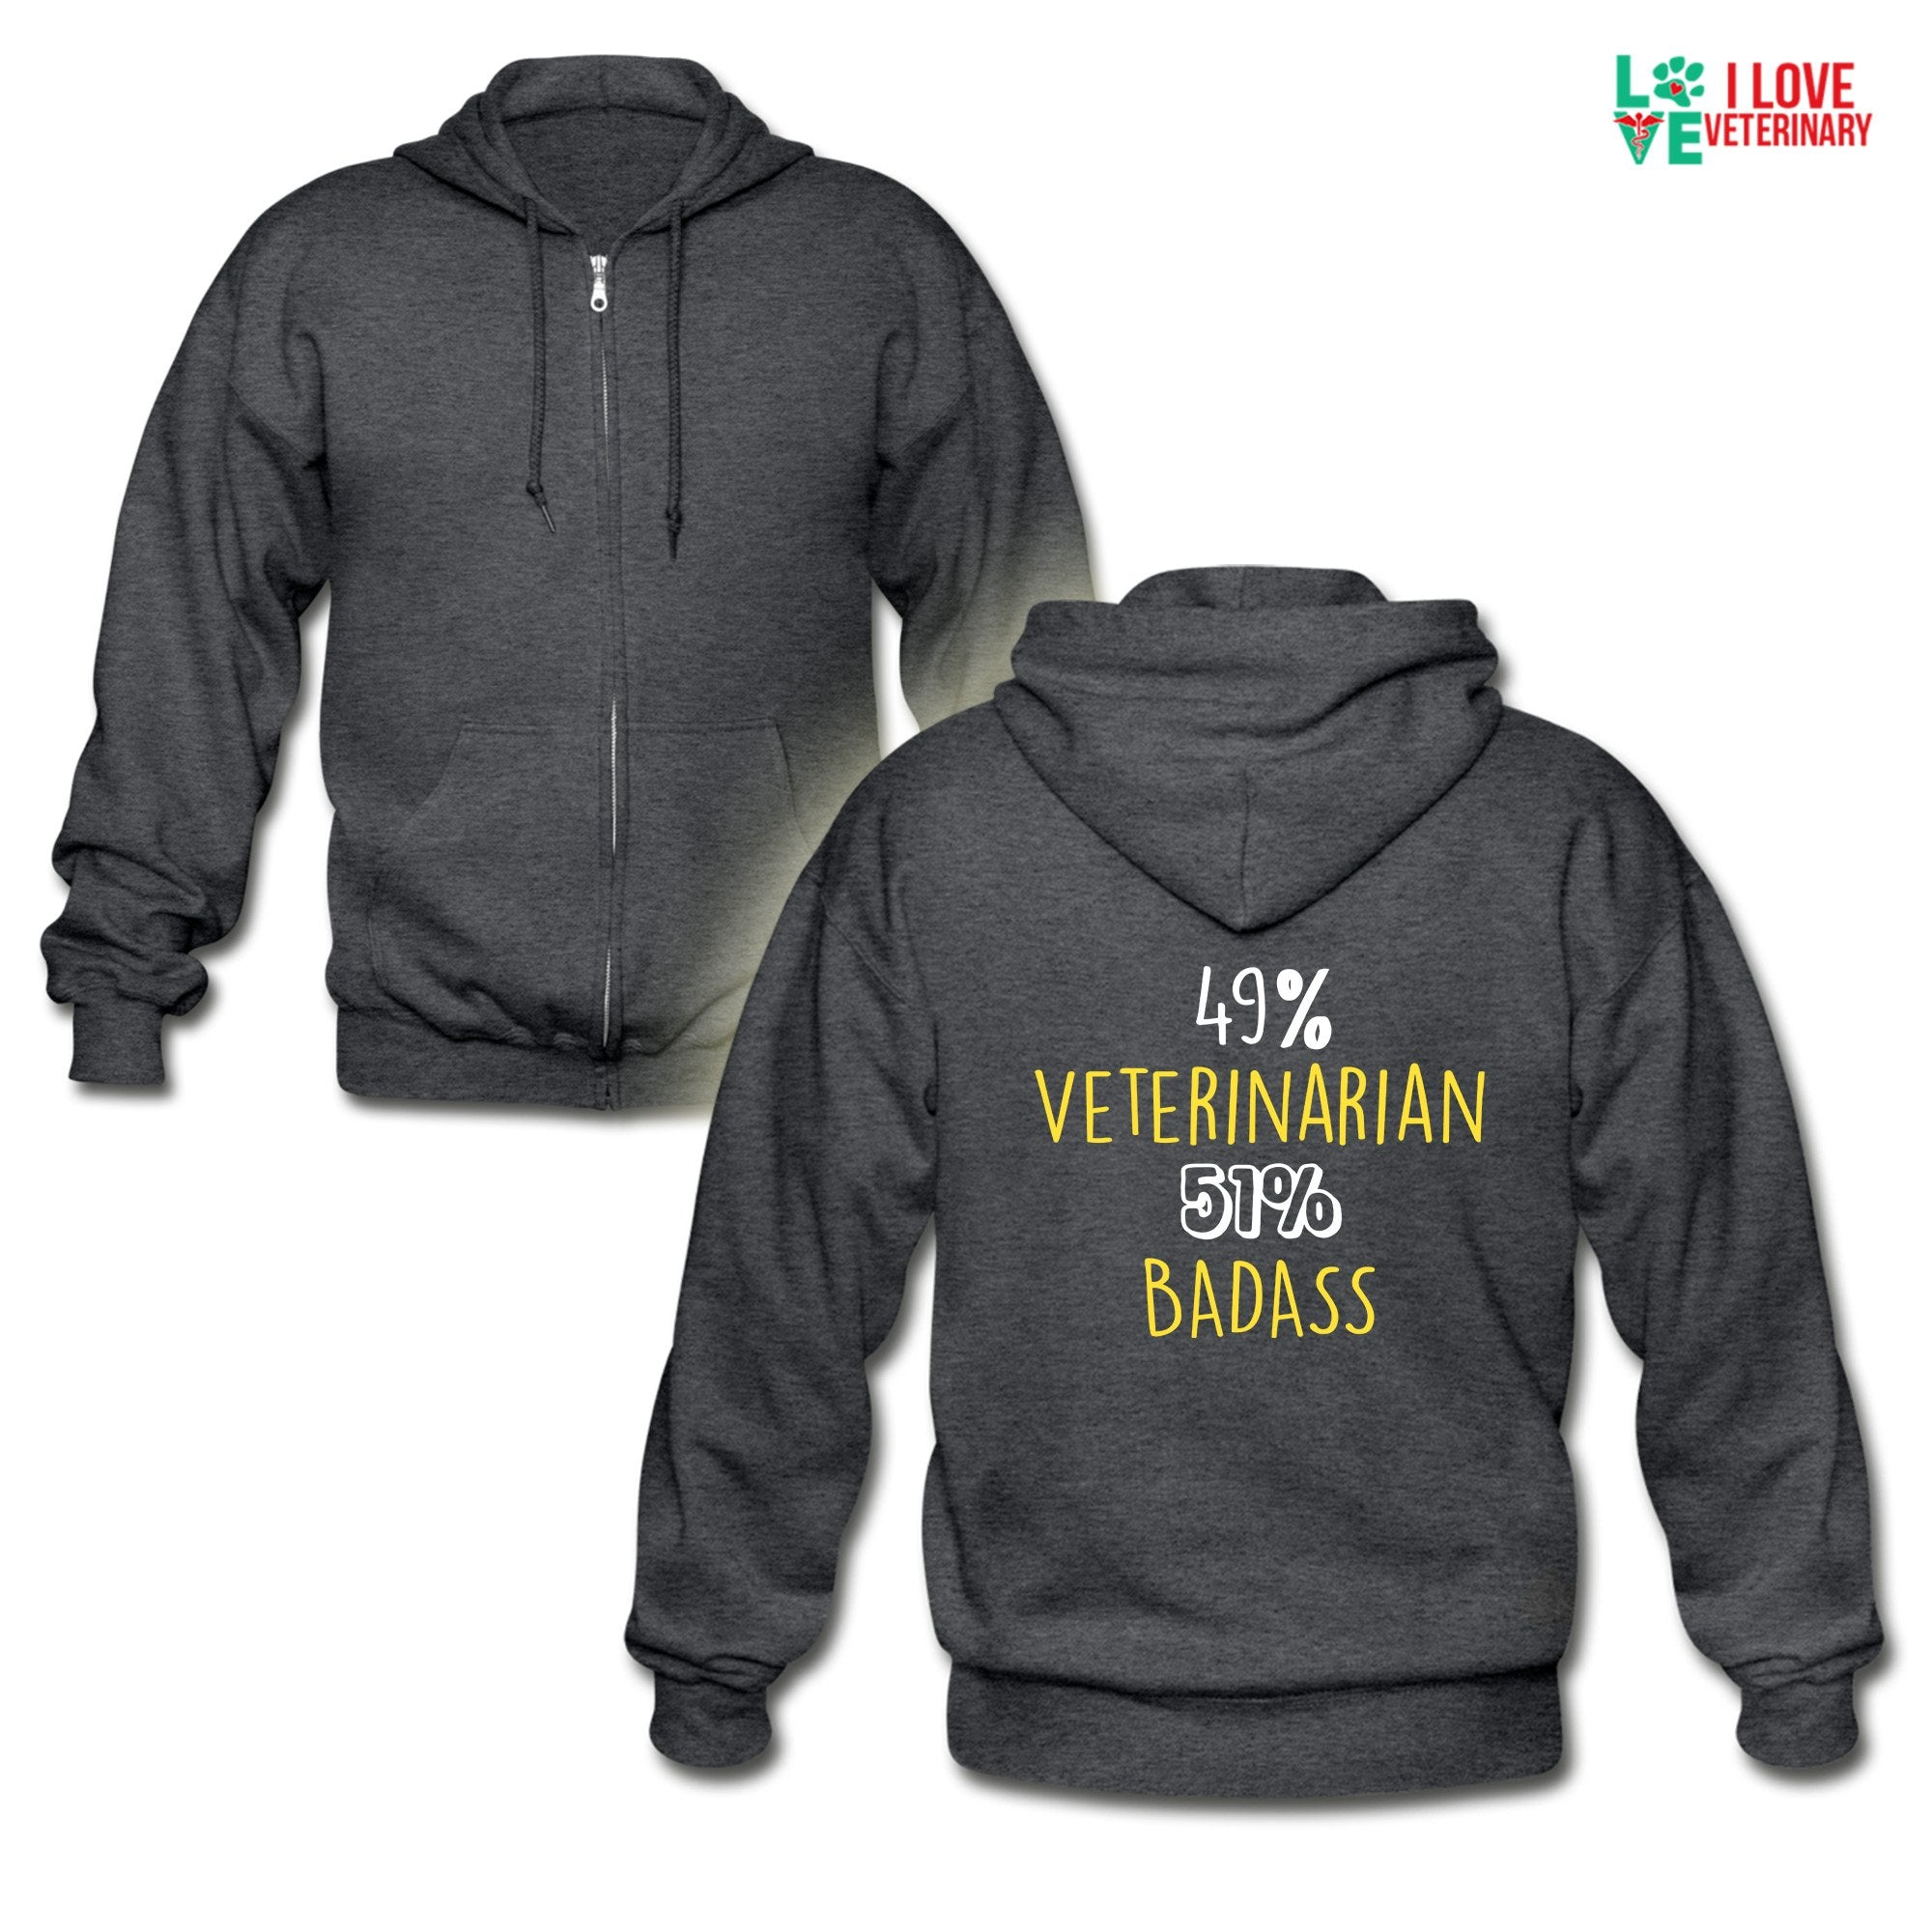 49% Veterinarian 51% Badass Unisex Zip Hoodie-Gildan Heavy Blend Adult Zip Hoodie-I love Veterinary